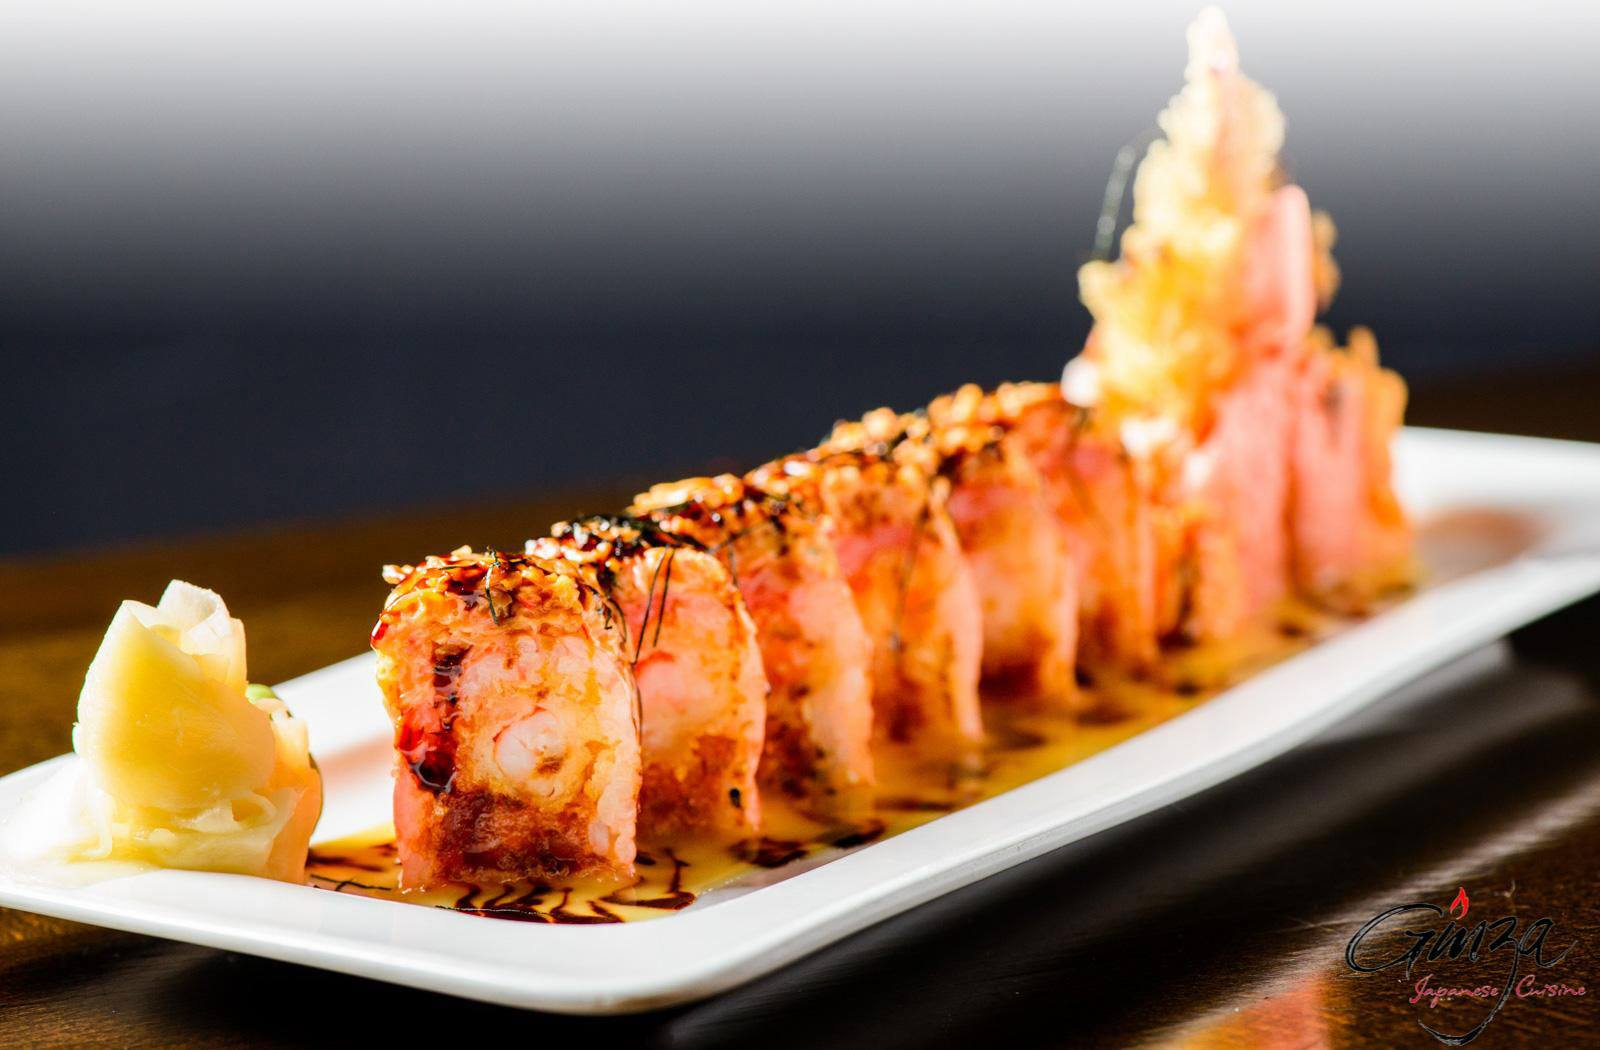 Location Wethersfield Ct Ginza Japanese Cuisine